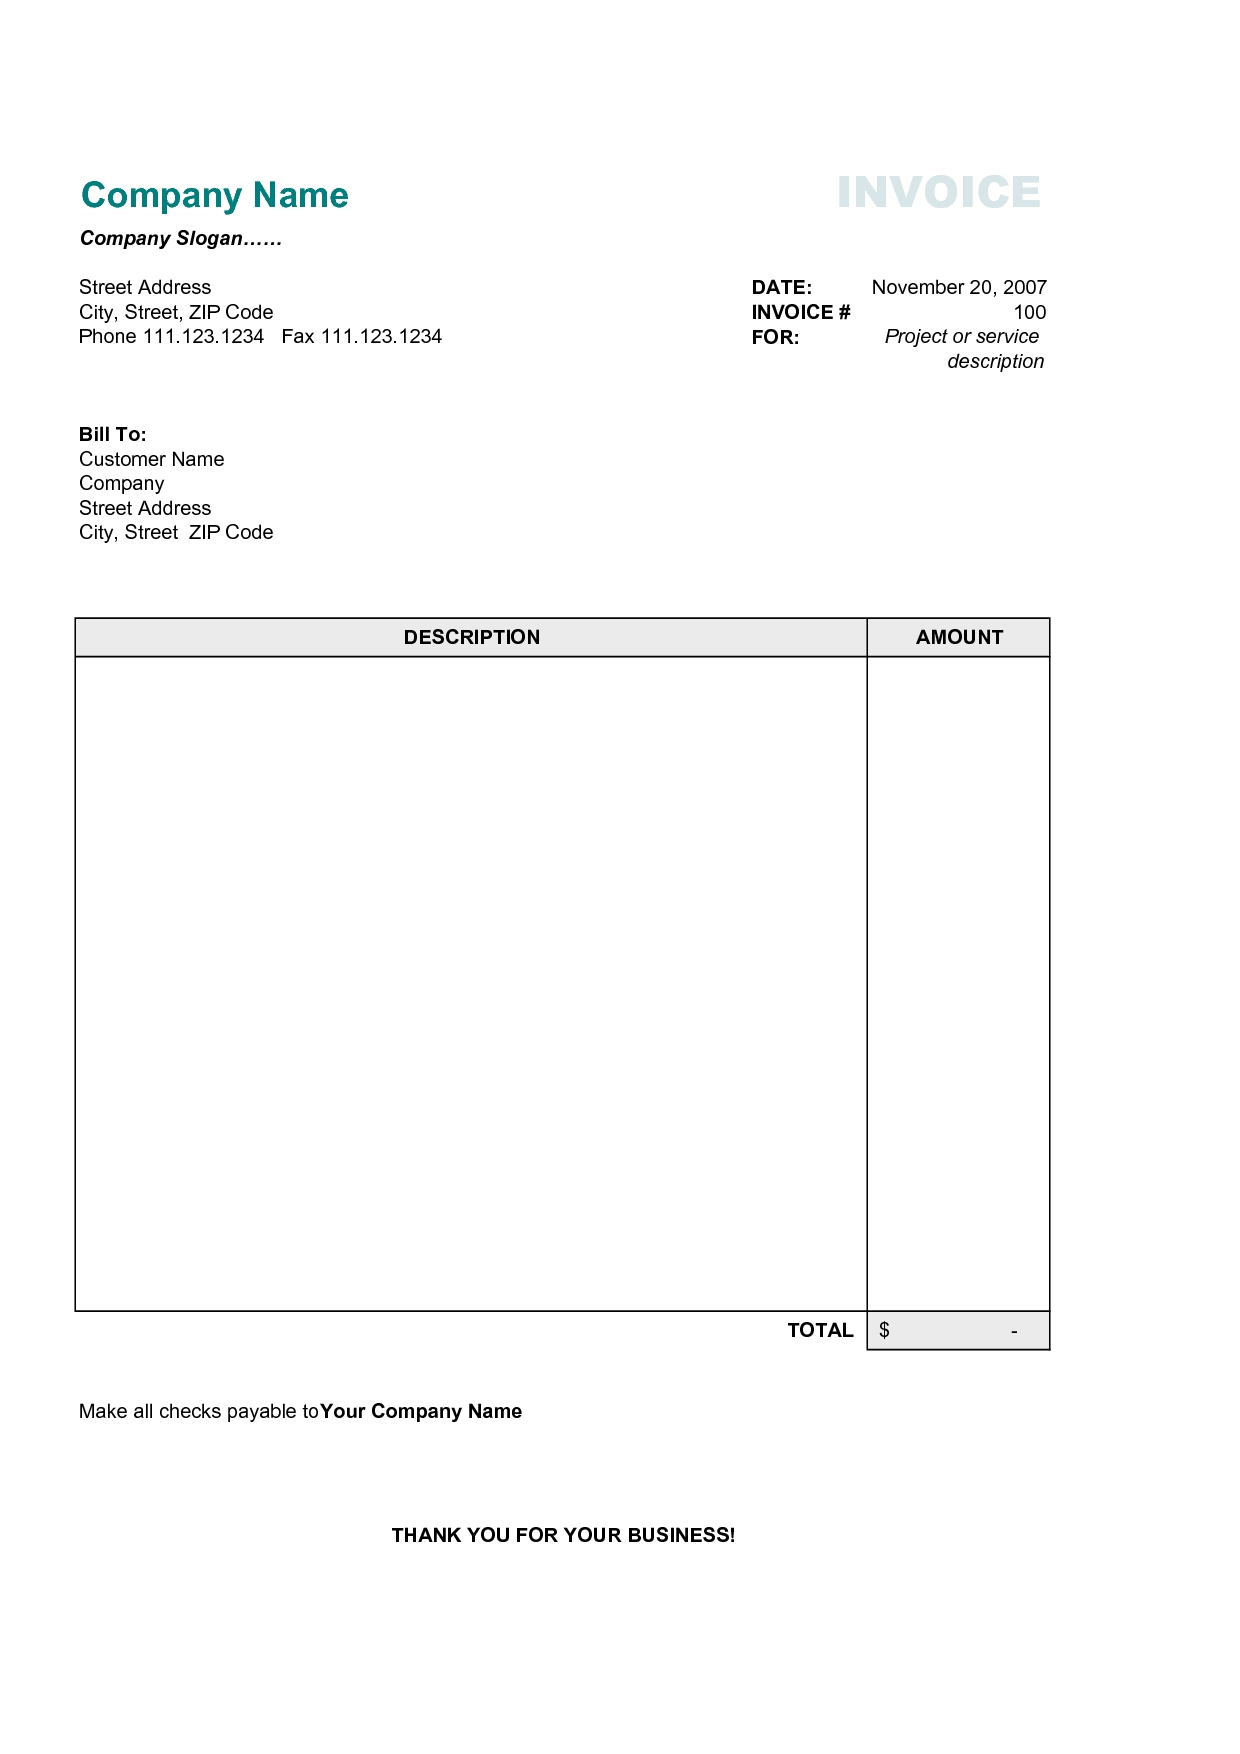 Free Business Invoice Templates Word